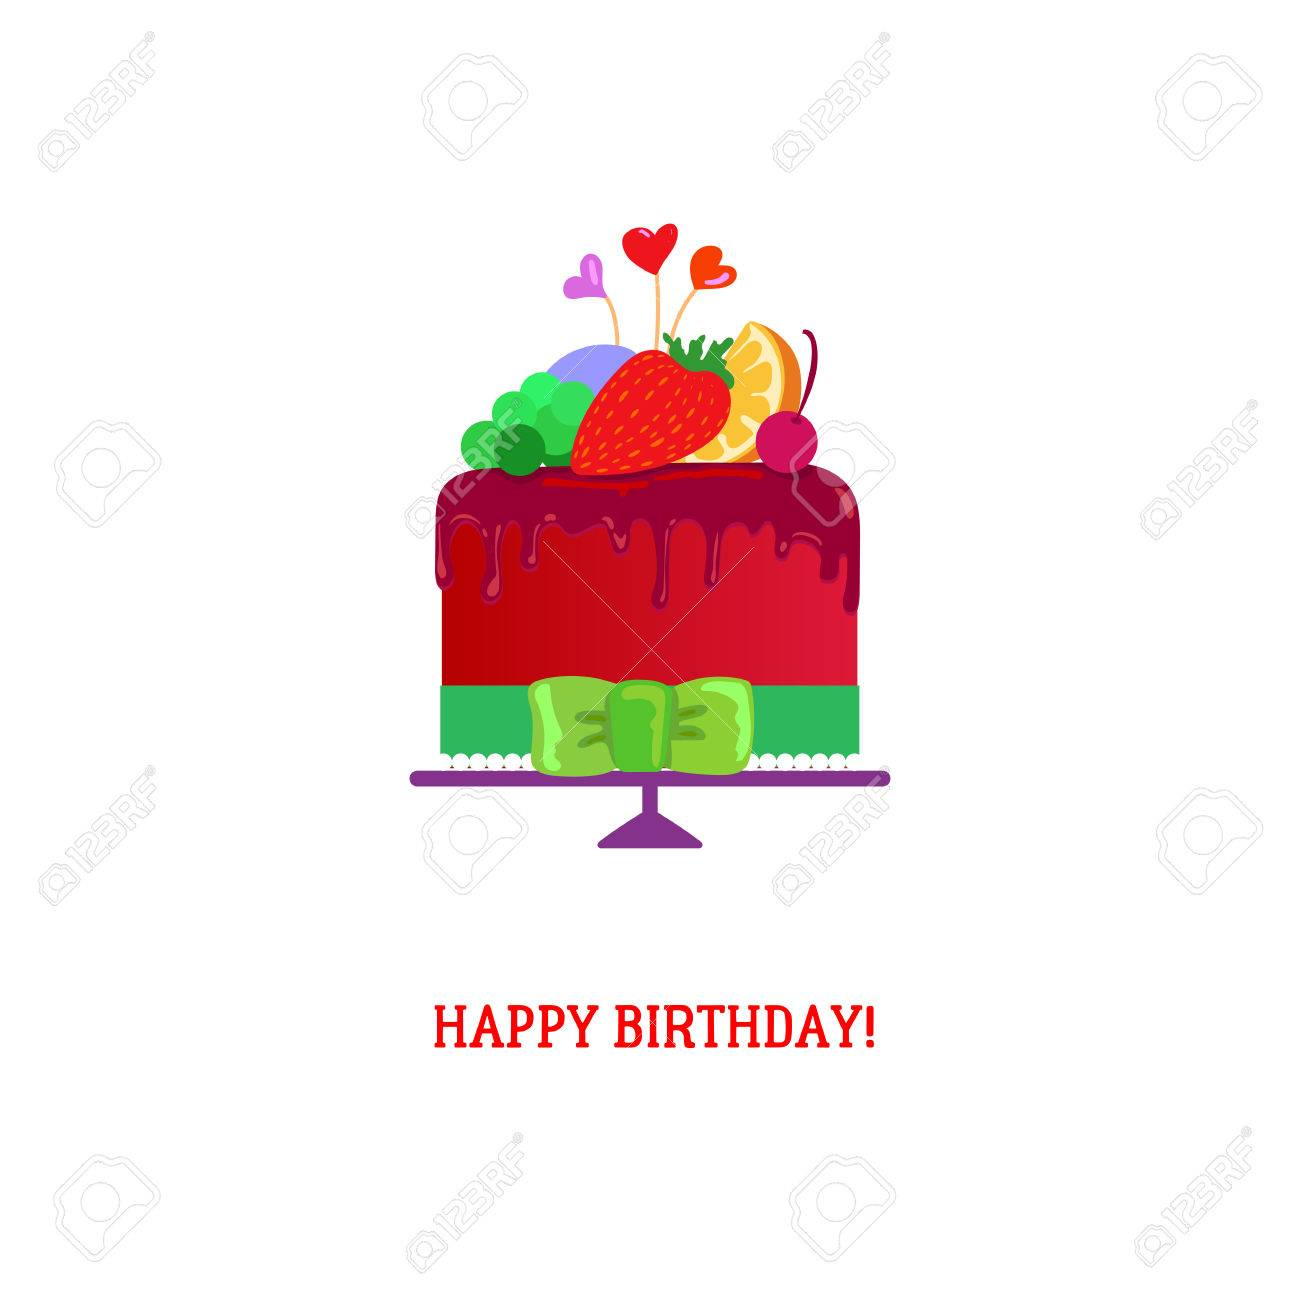 Happy Birthday Cake With Chocolate And Fruits Tasty Vector Illustration